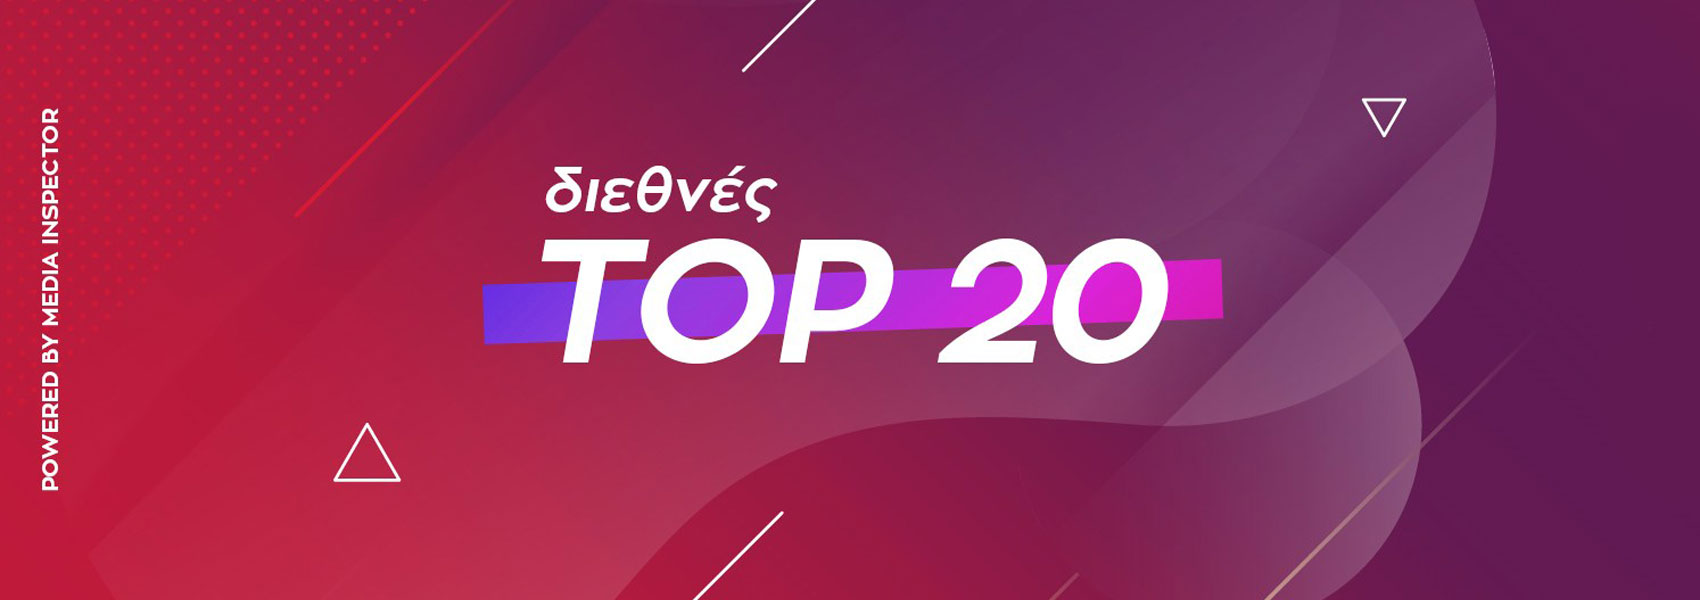 TOP 20 BY IFPI